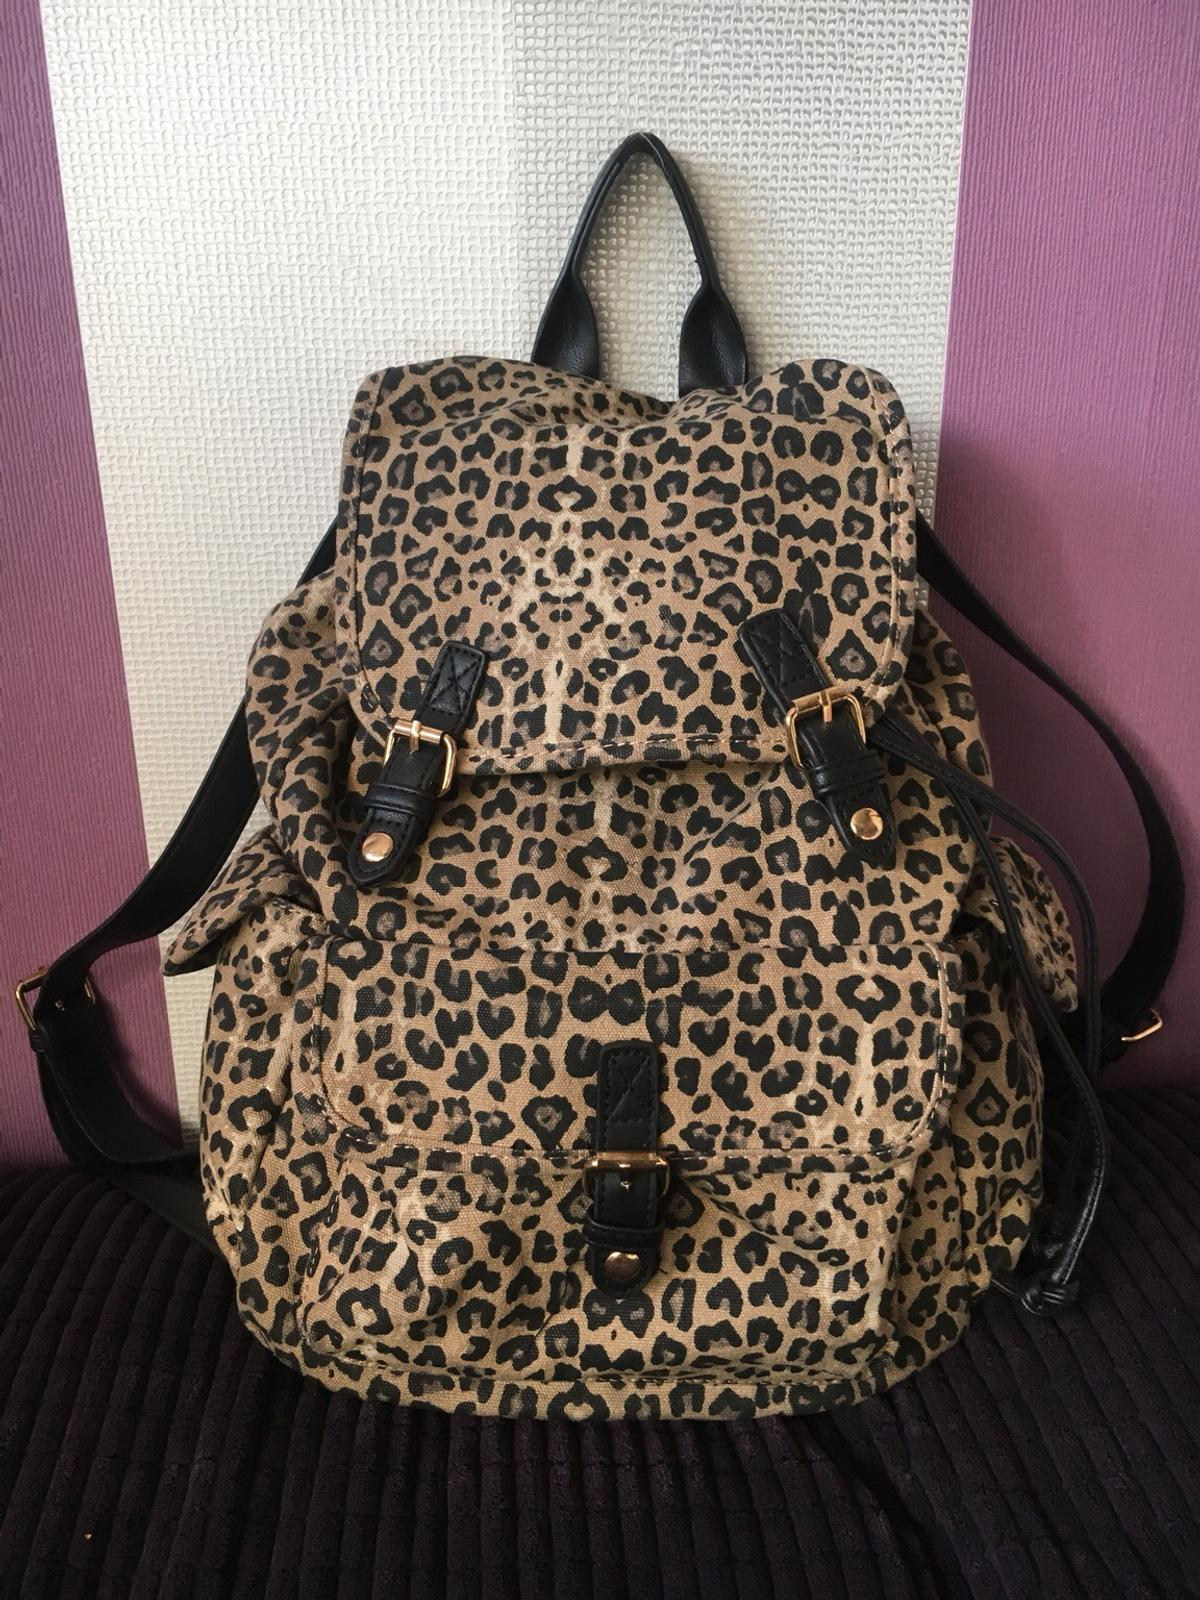 fdac79a2c Accessorize Backpack Rucksack School Bag in M25 Kirkhams for £7.00 ...